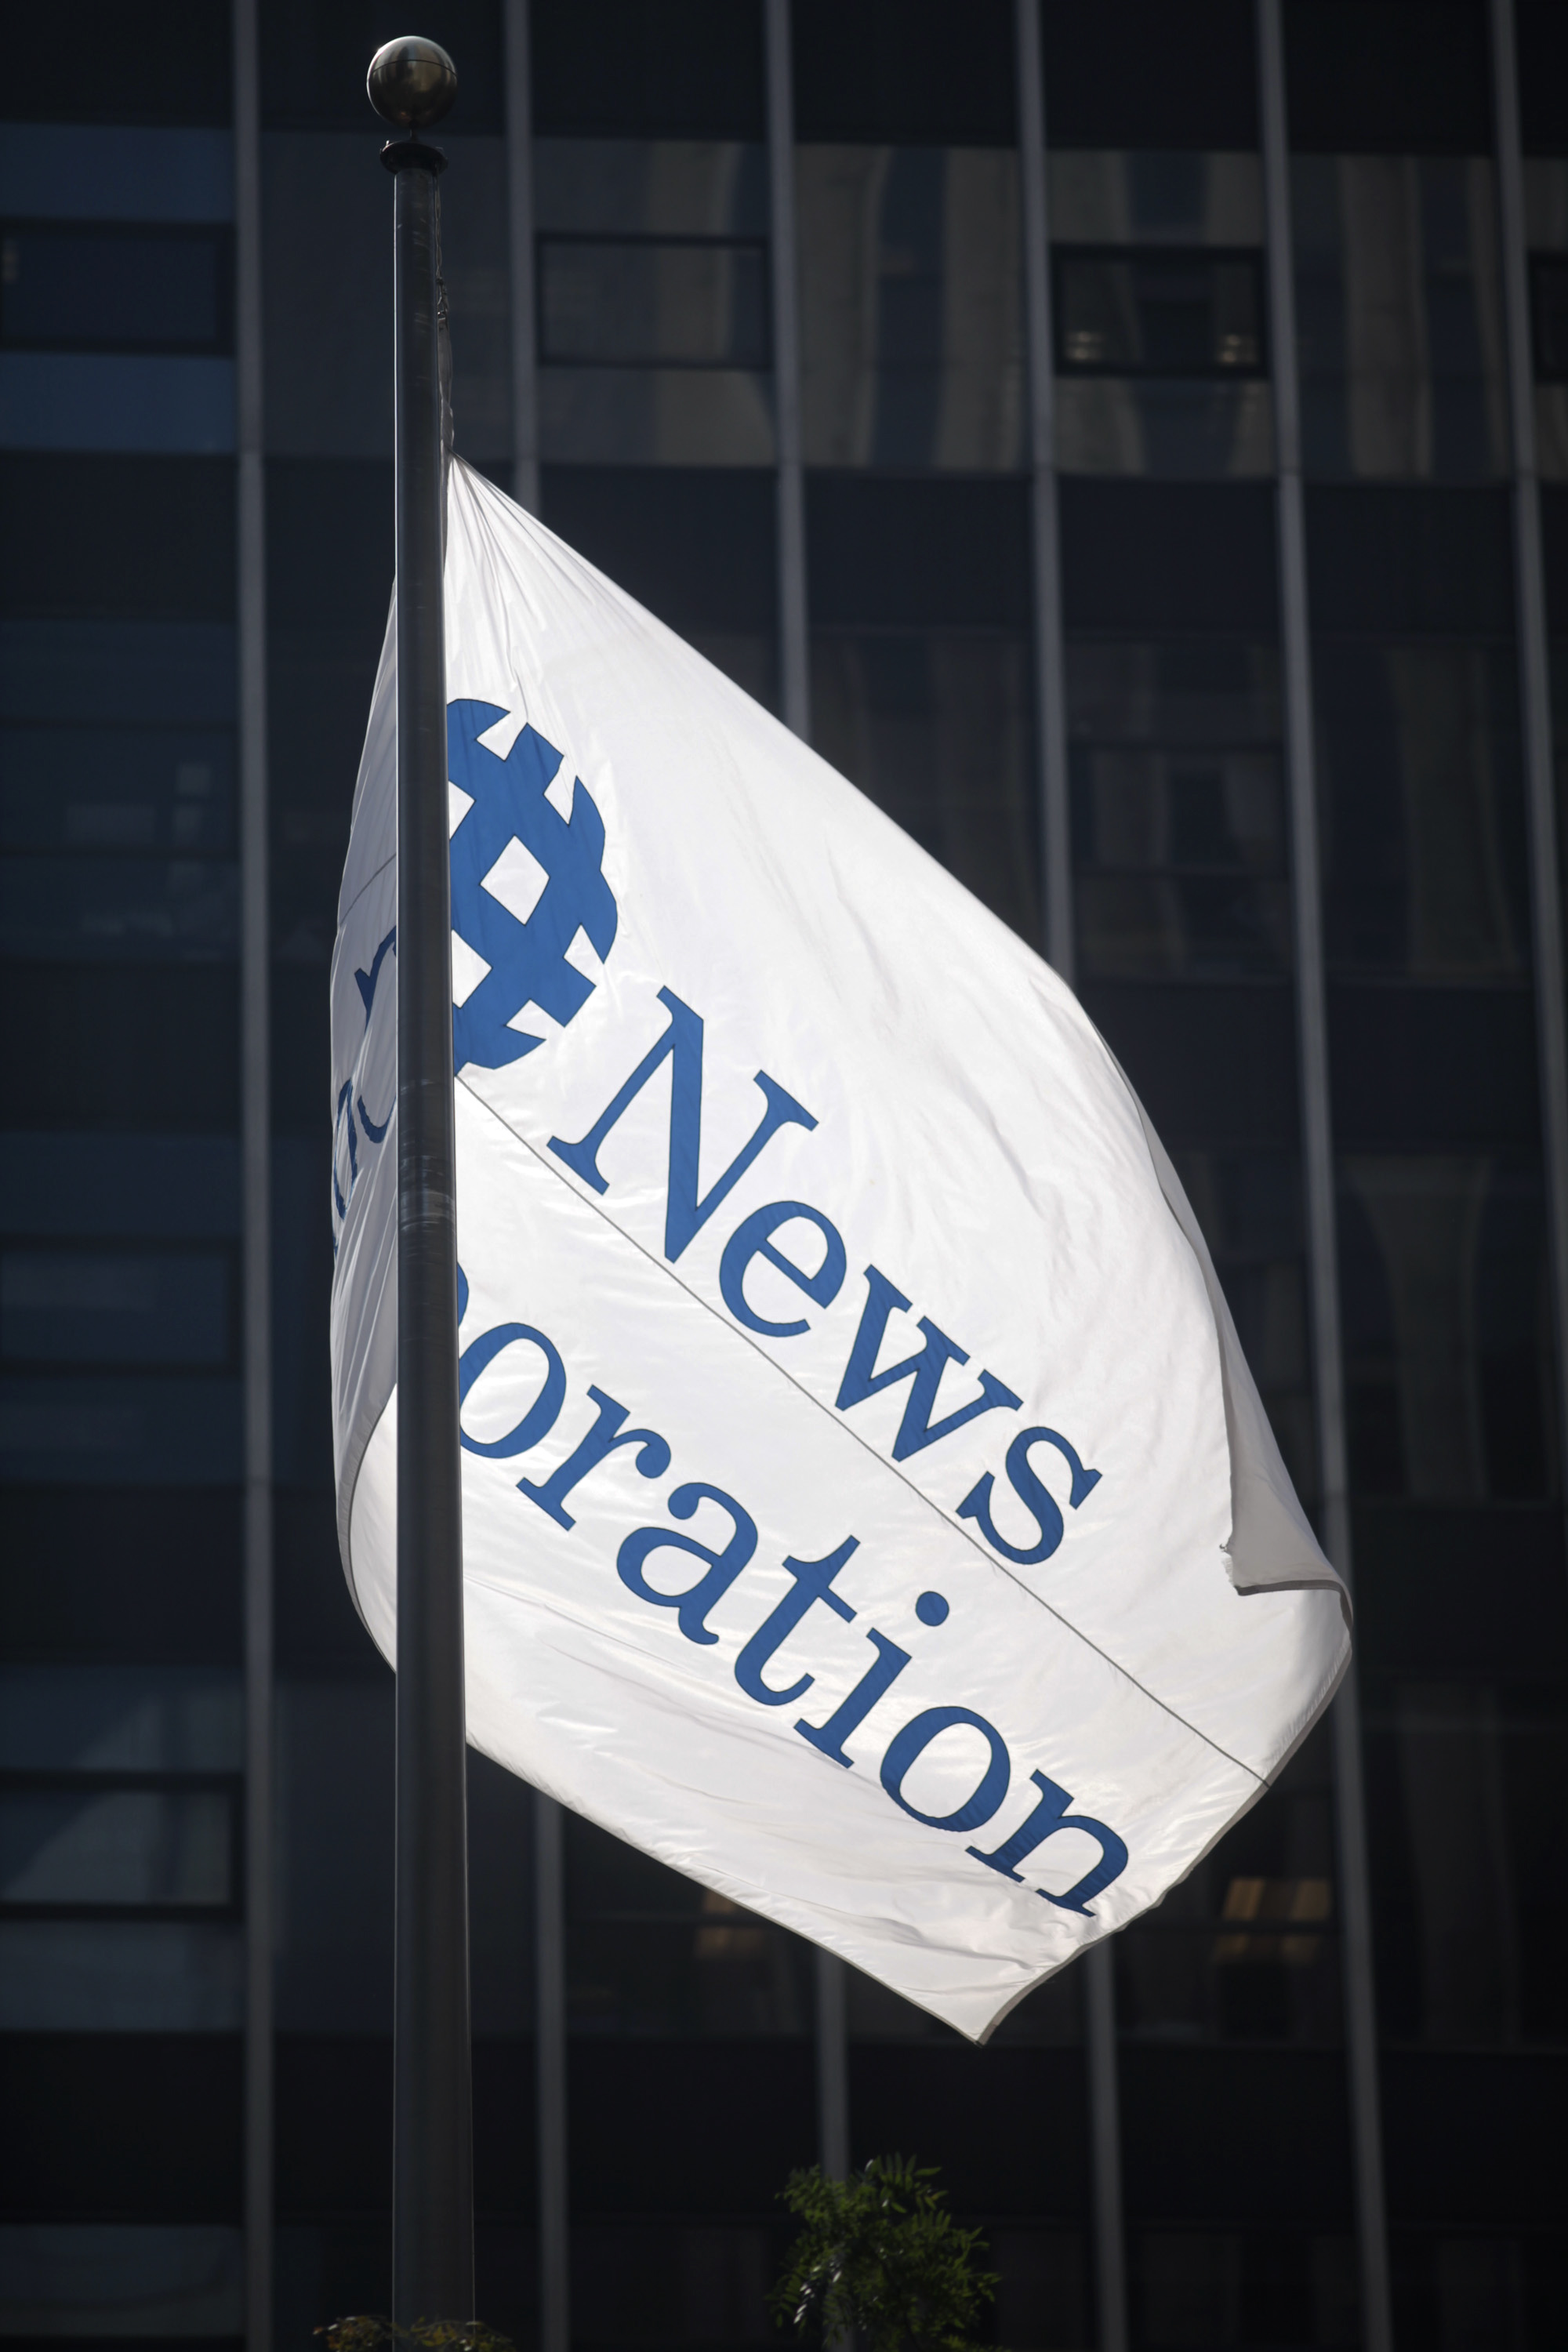 After the Debacle: How News Corp. Can Rebuild Trust